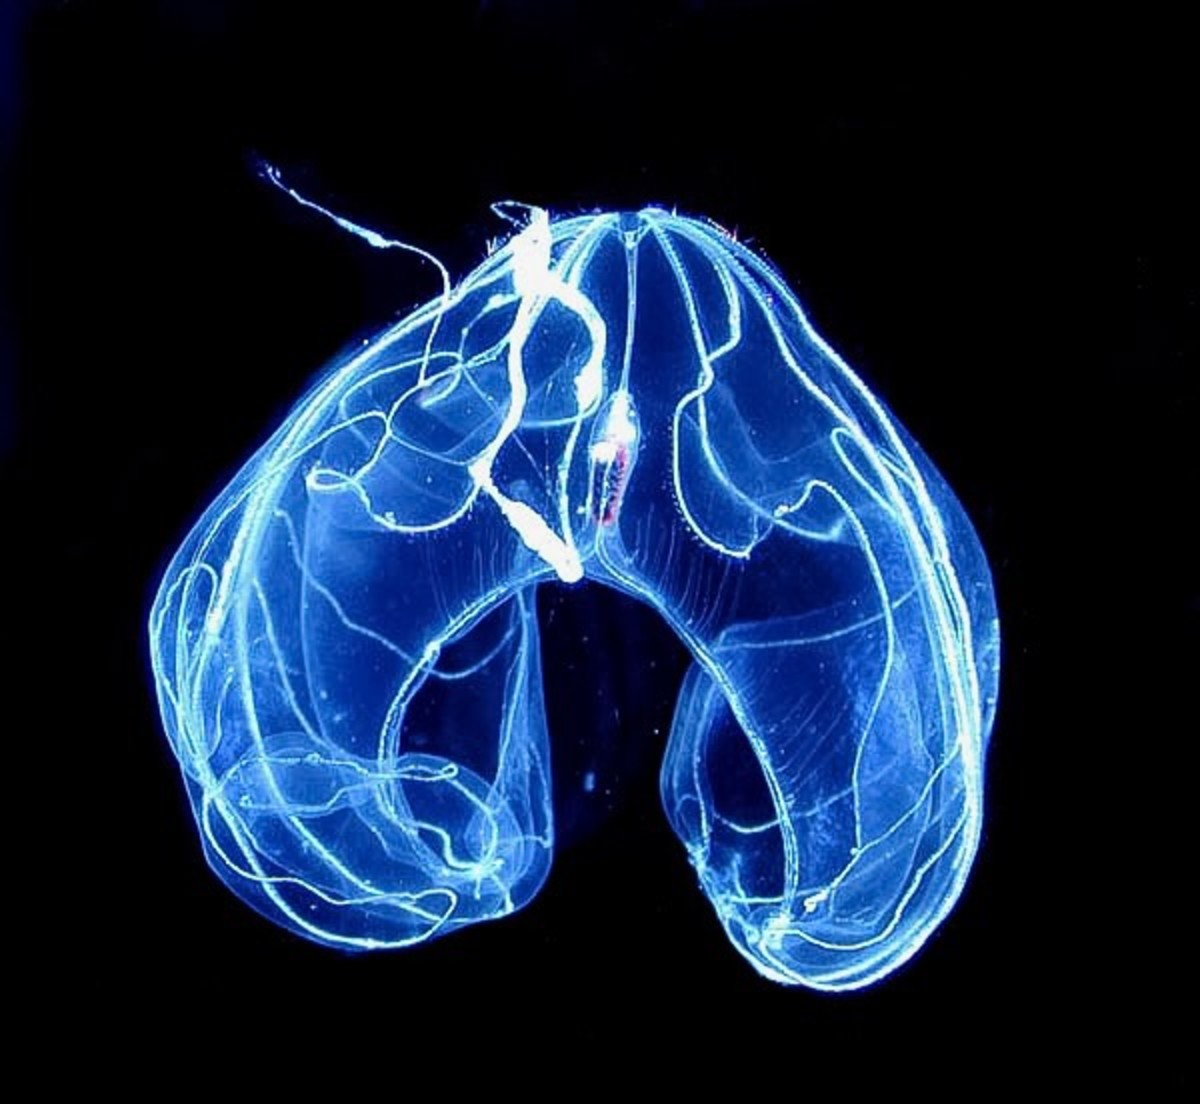 A bioluminescent ctenophore in the deep ocean